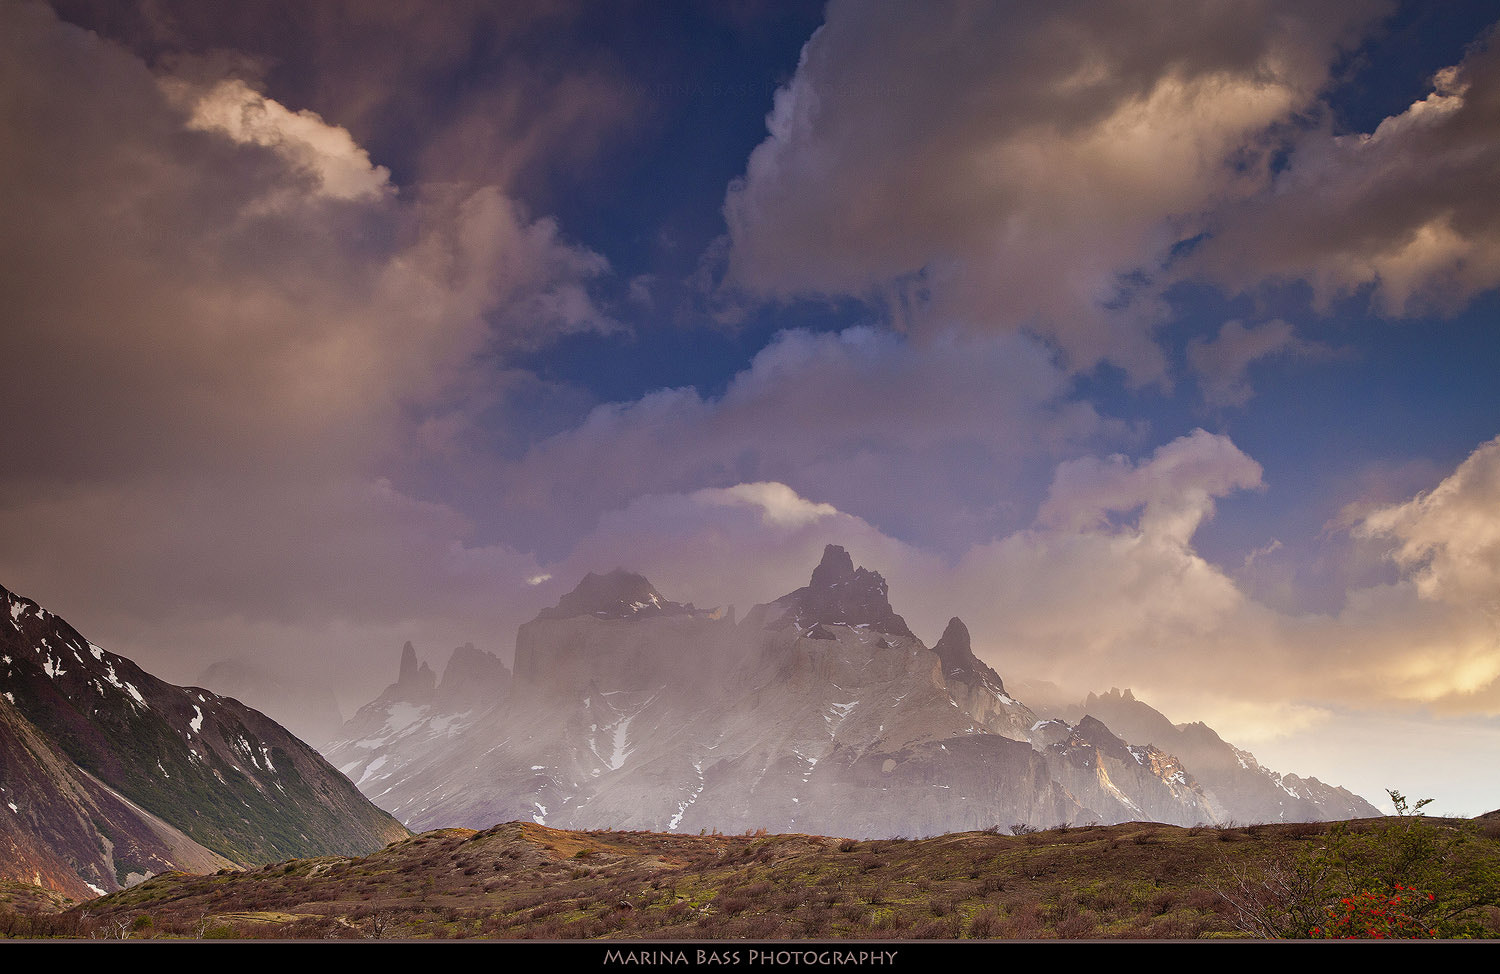 Photograph Misty Morning in Torres Del Paine by Marina Bass on 500px